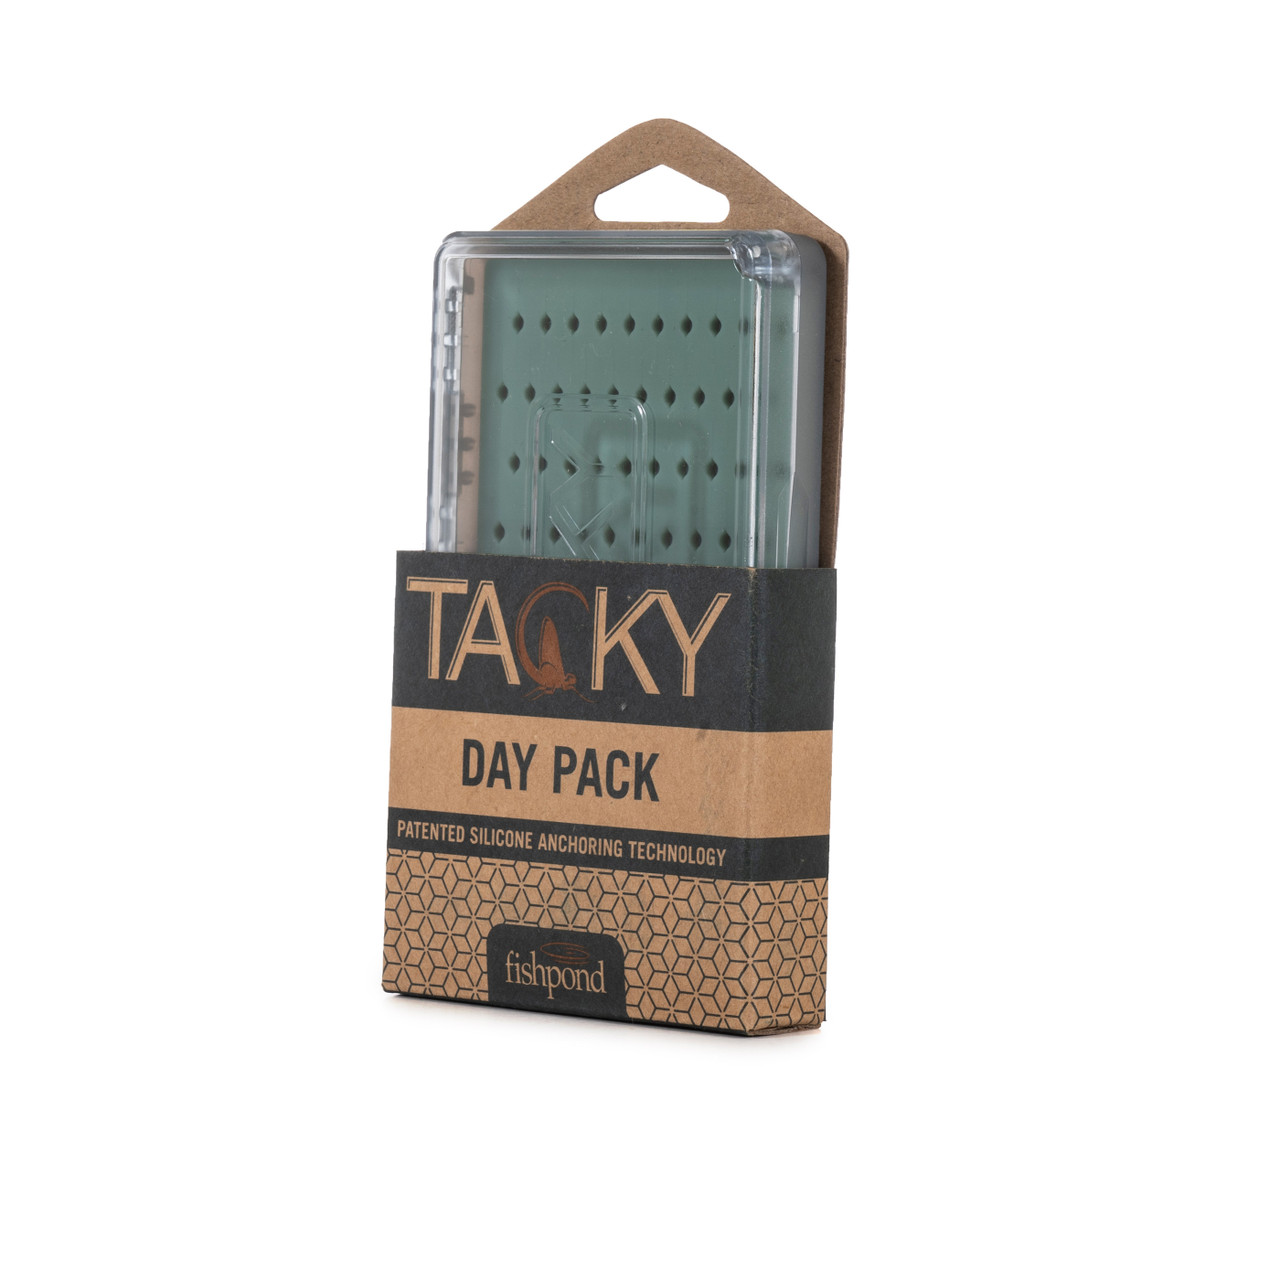 Fishpond Tacky Day Pack Fly Box, 1 Sided